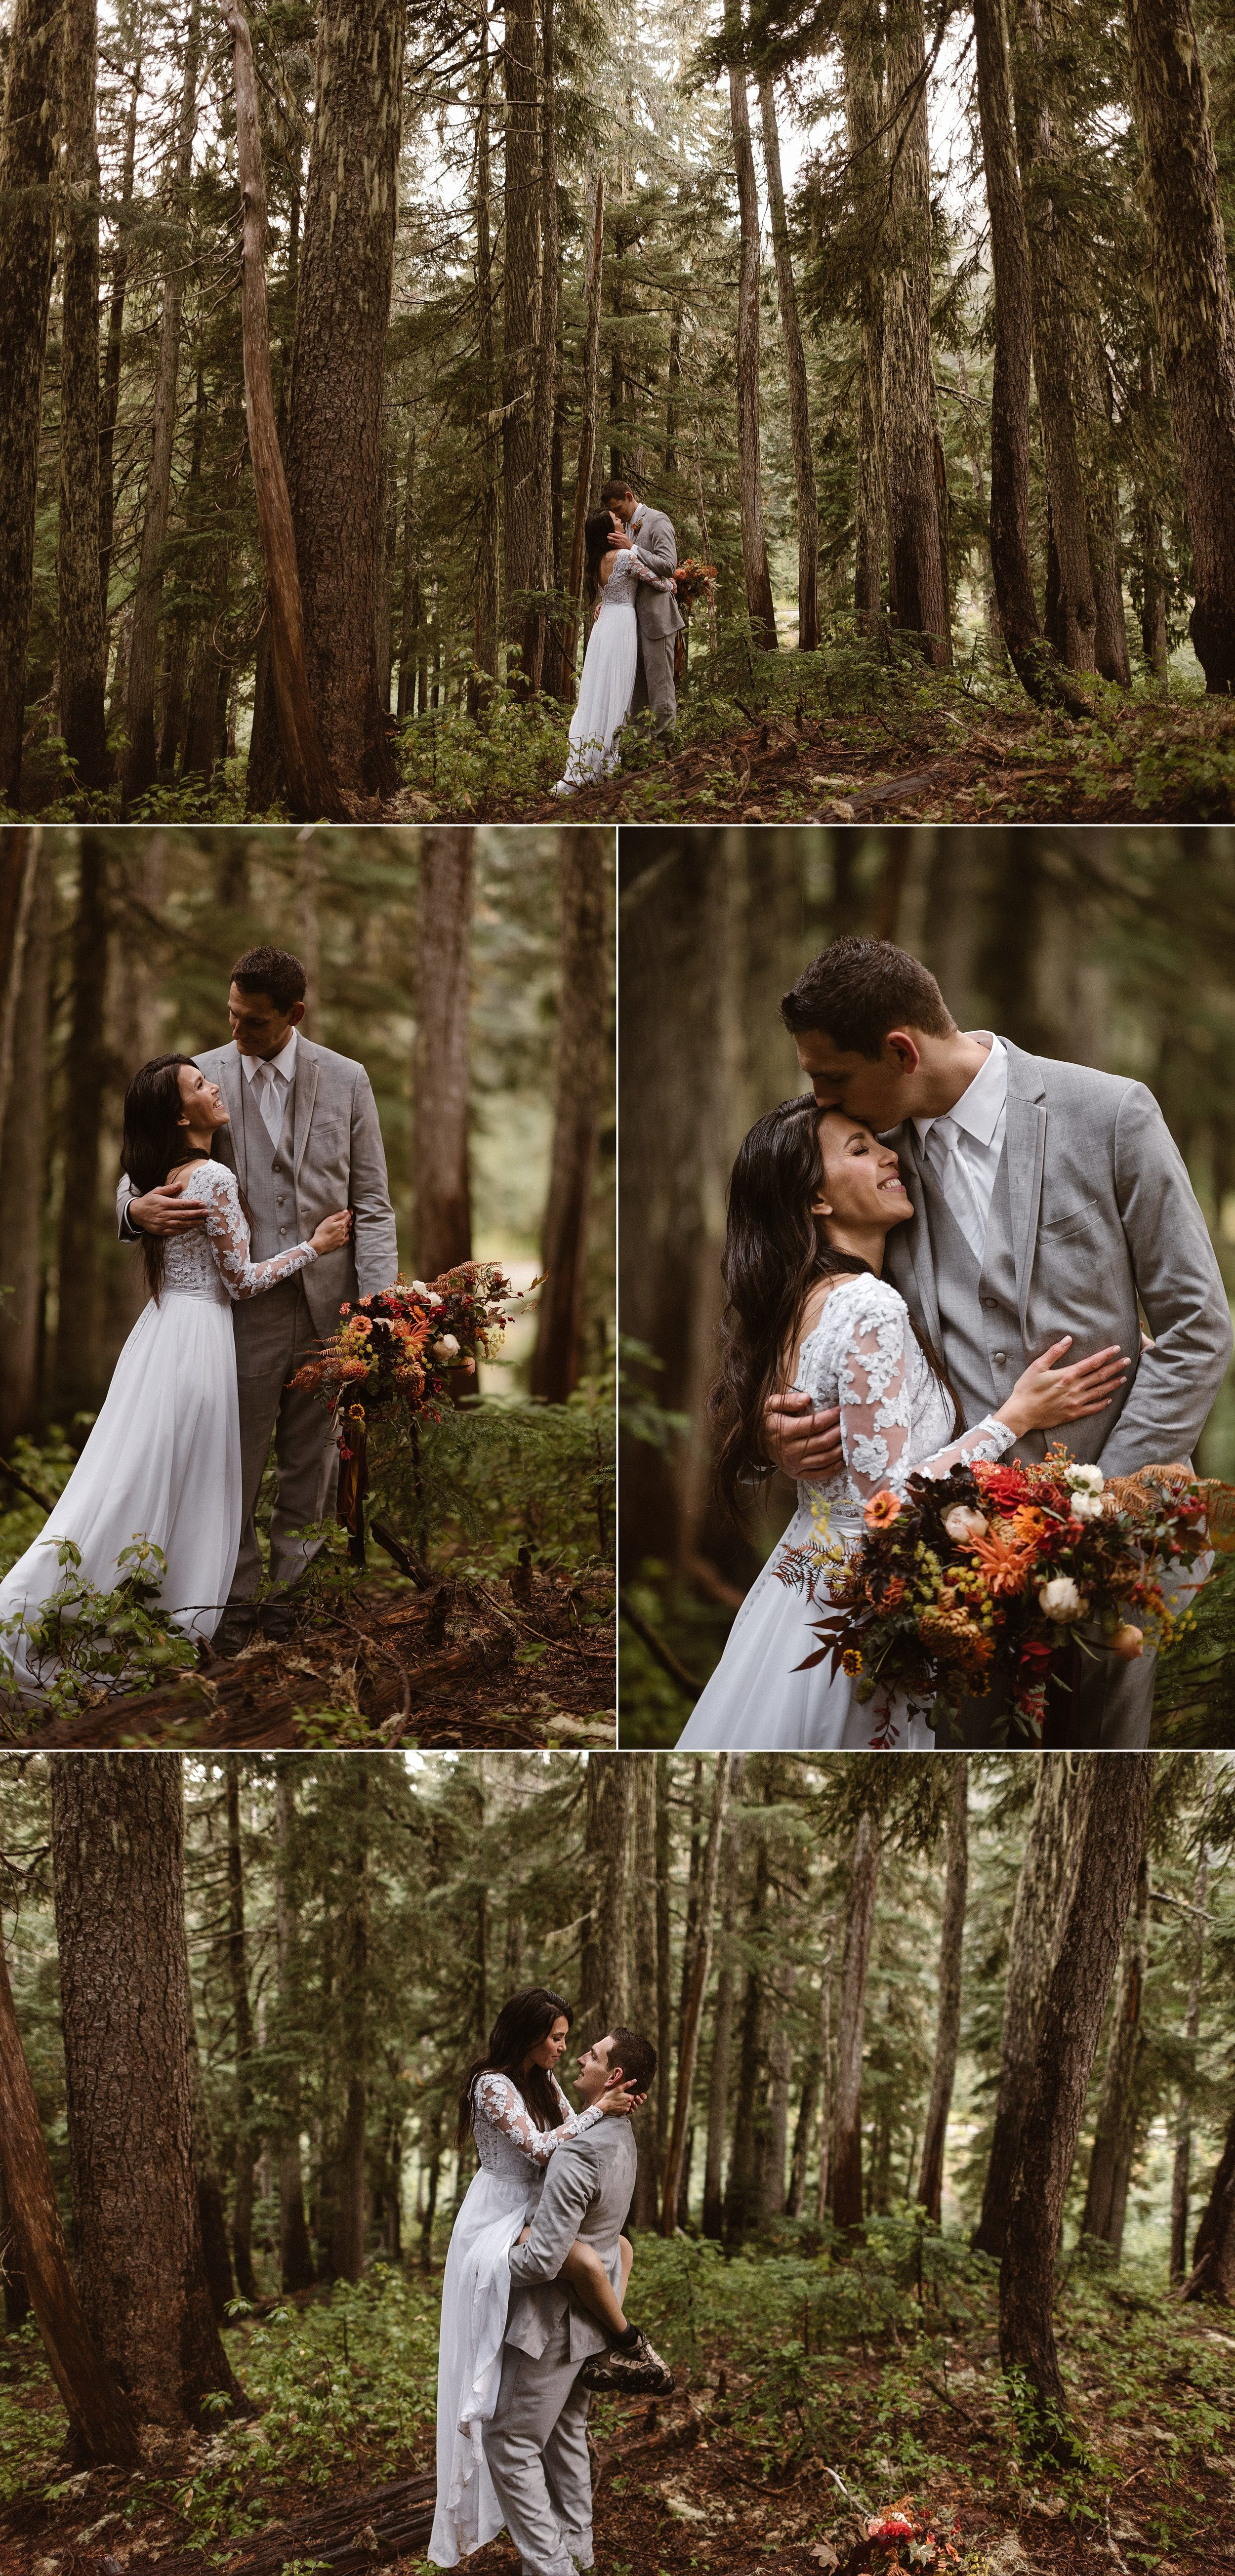 The sun began to peek out through the fog, in typical Pacific Northwest fashion, as they wandered through the woods and rain. Resa jumped into her husbands arms as they shared a moment almost as though no one was there in the forest of Mount Rainier National Park with them. Their intimate elopement photographer Maddie Mae snapped away capturing each dreamy elopement moment.